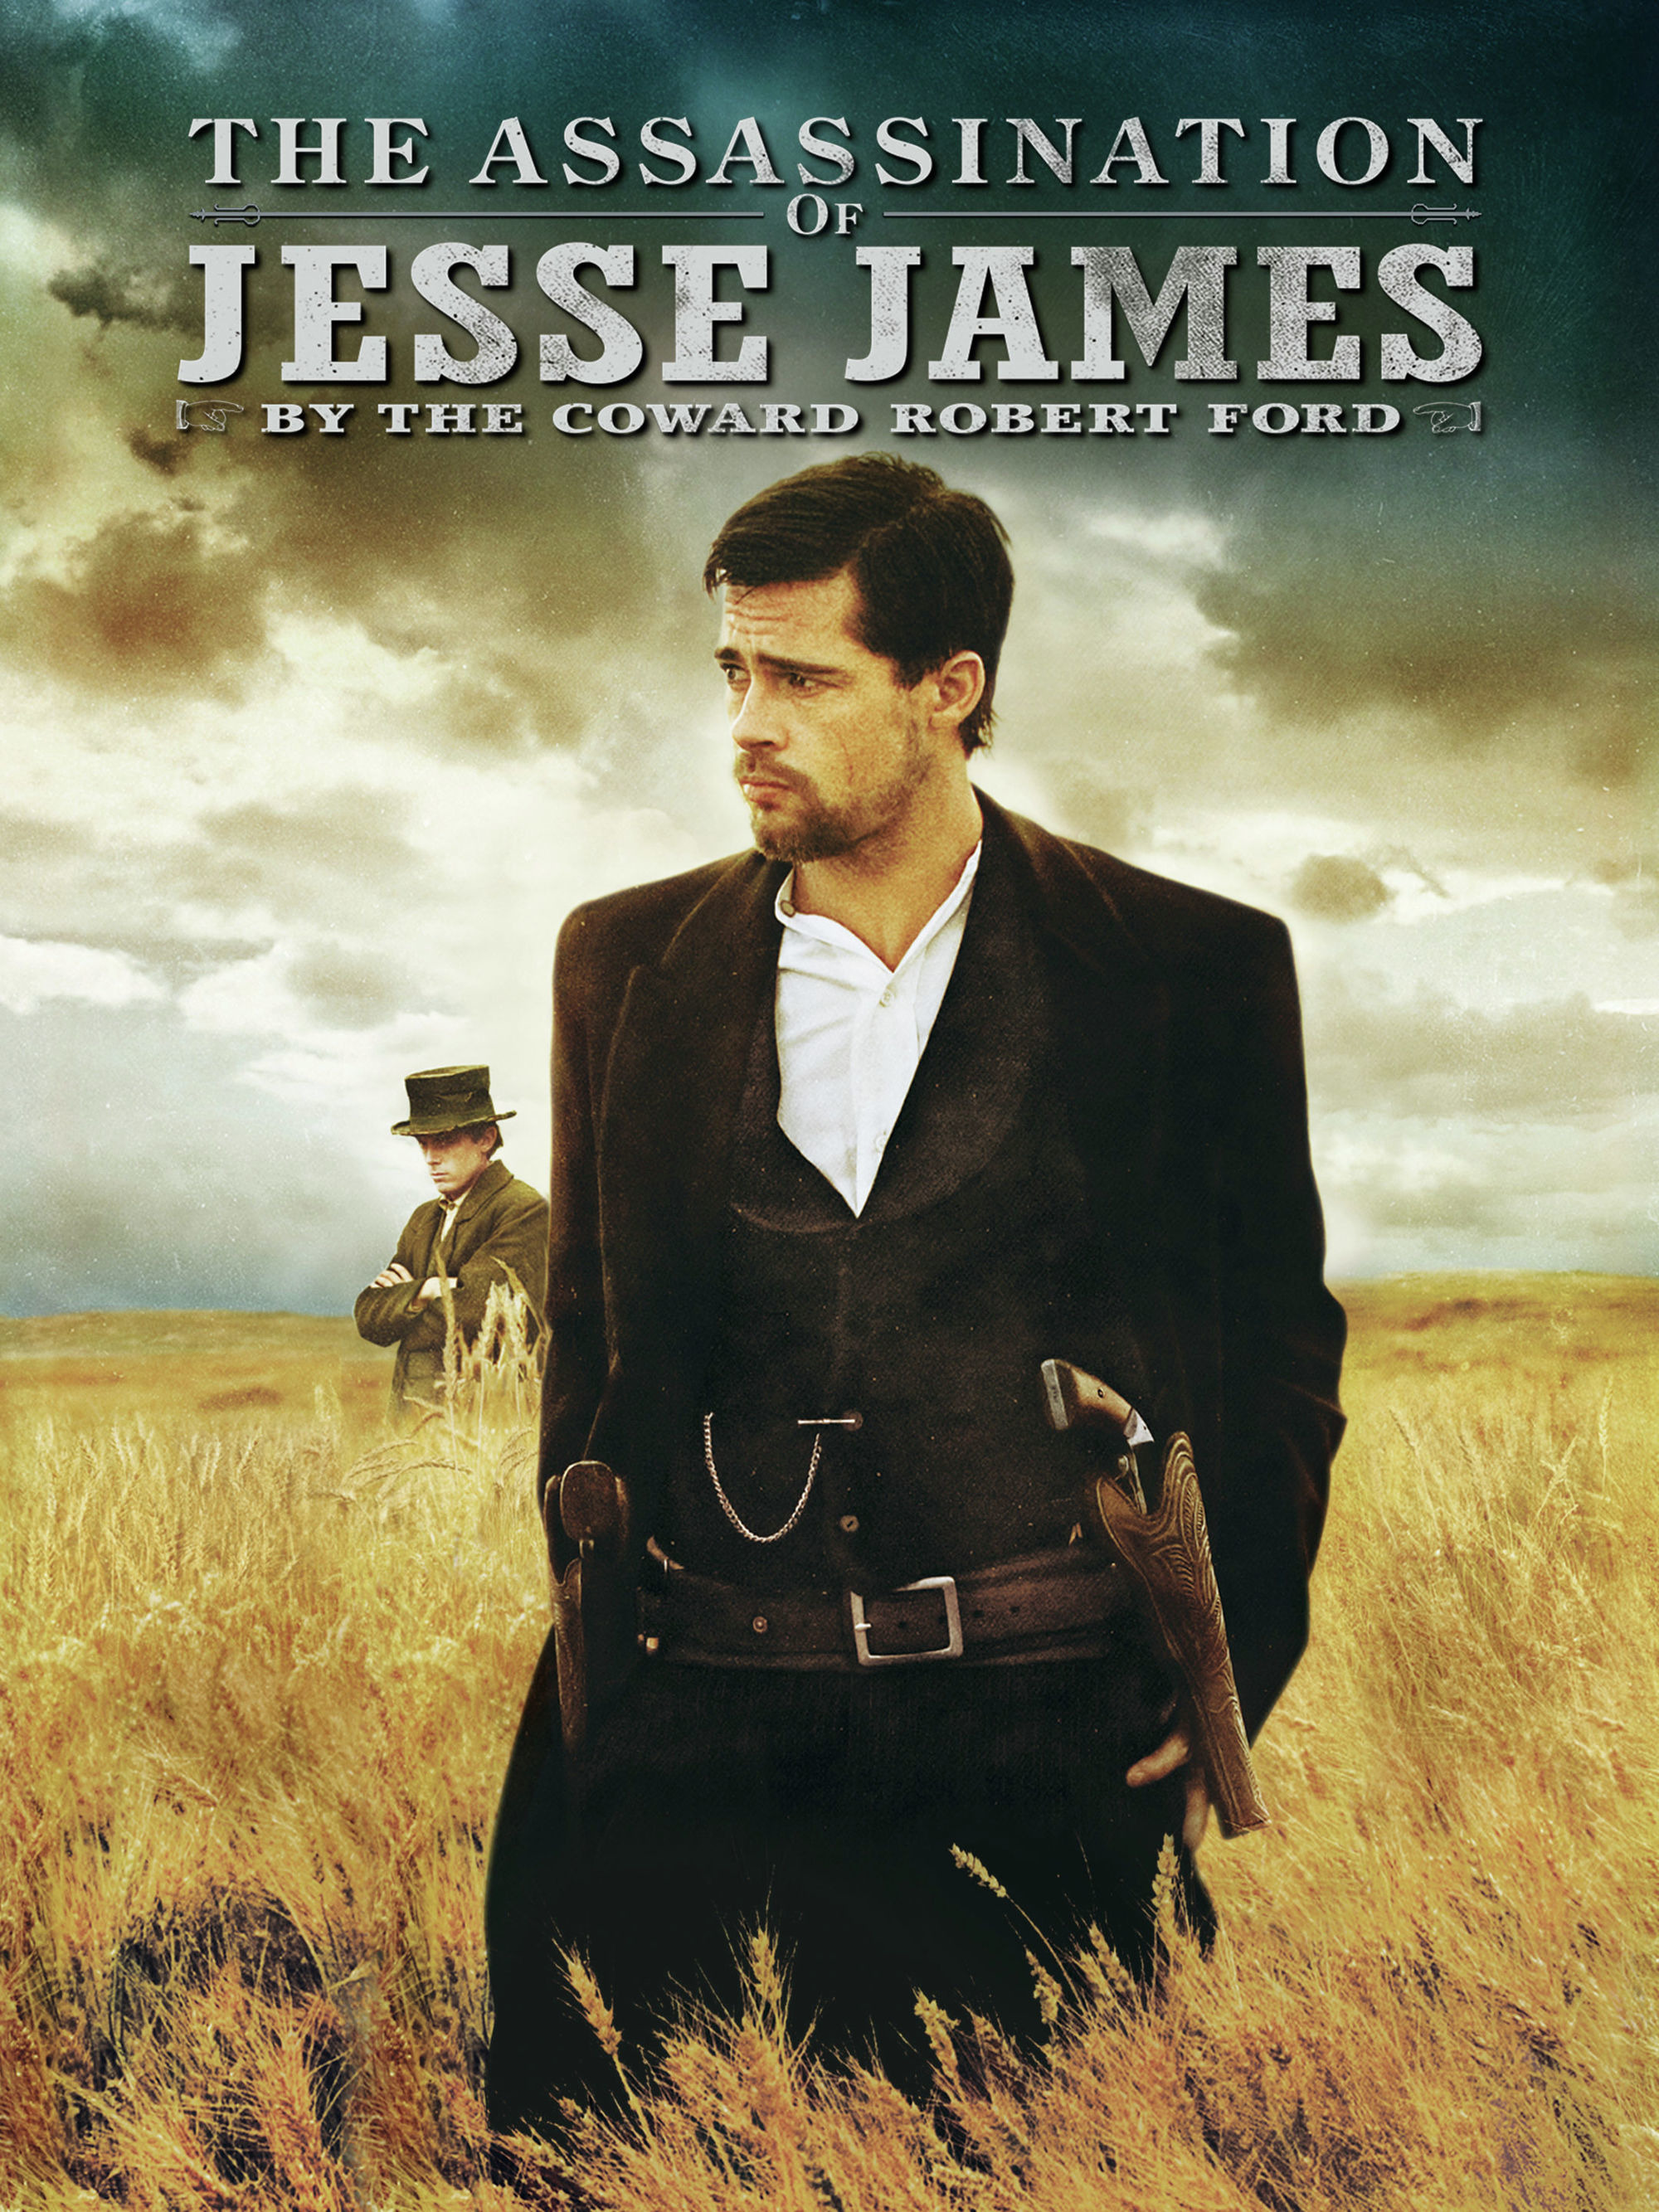 Die Ermordung des Jesse James durch den Feigling Robert Ford